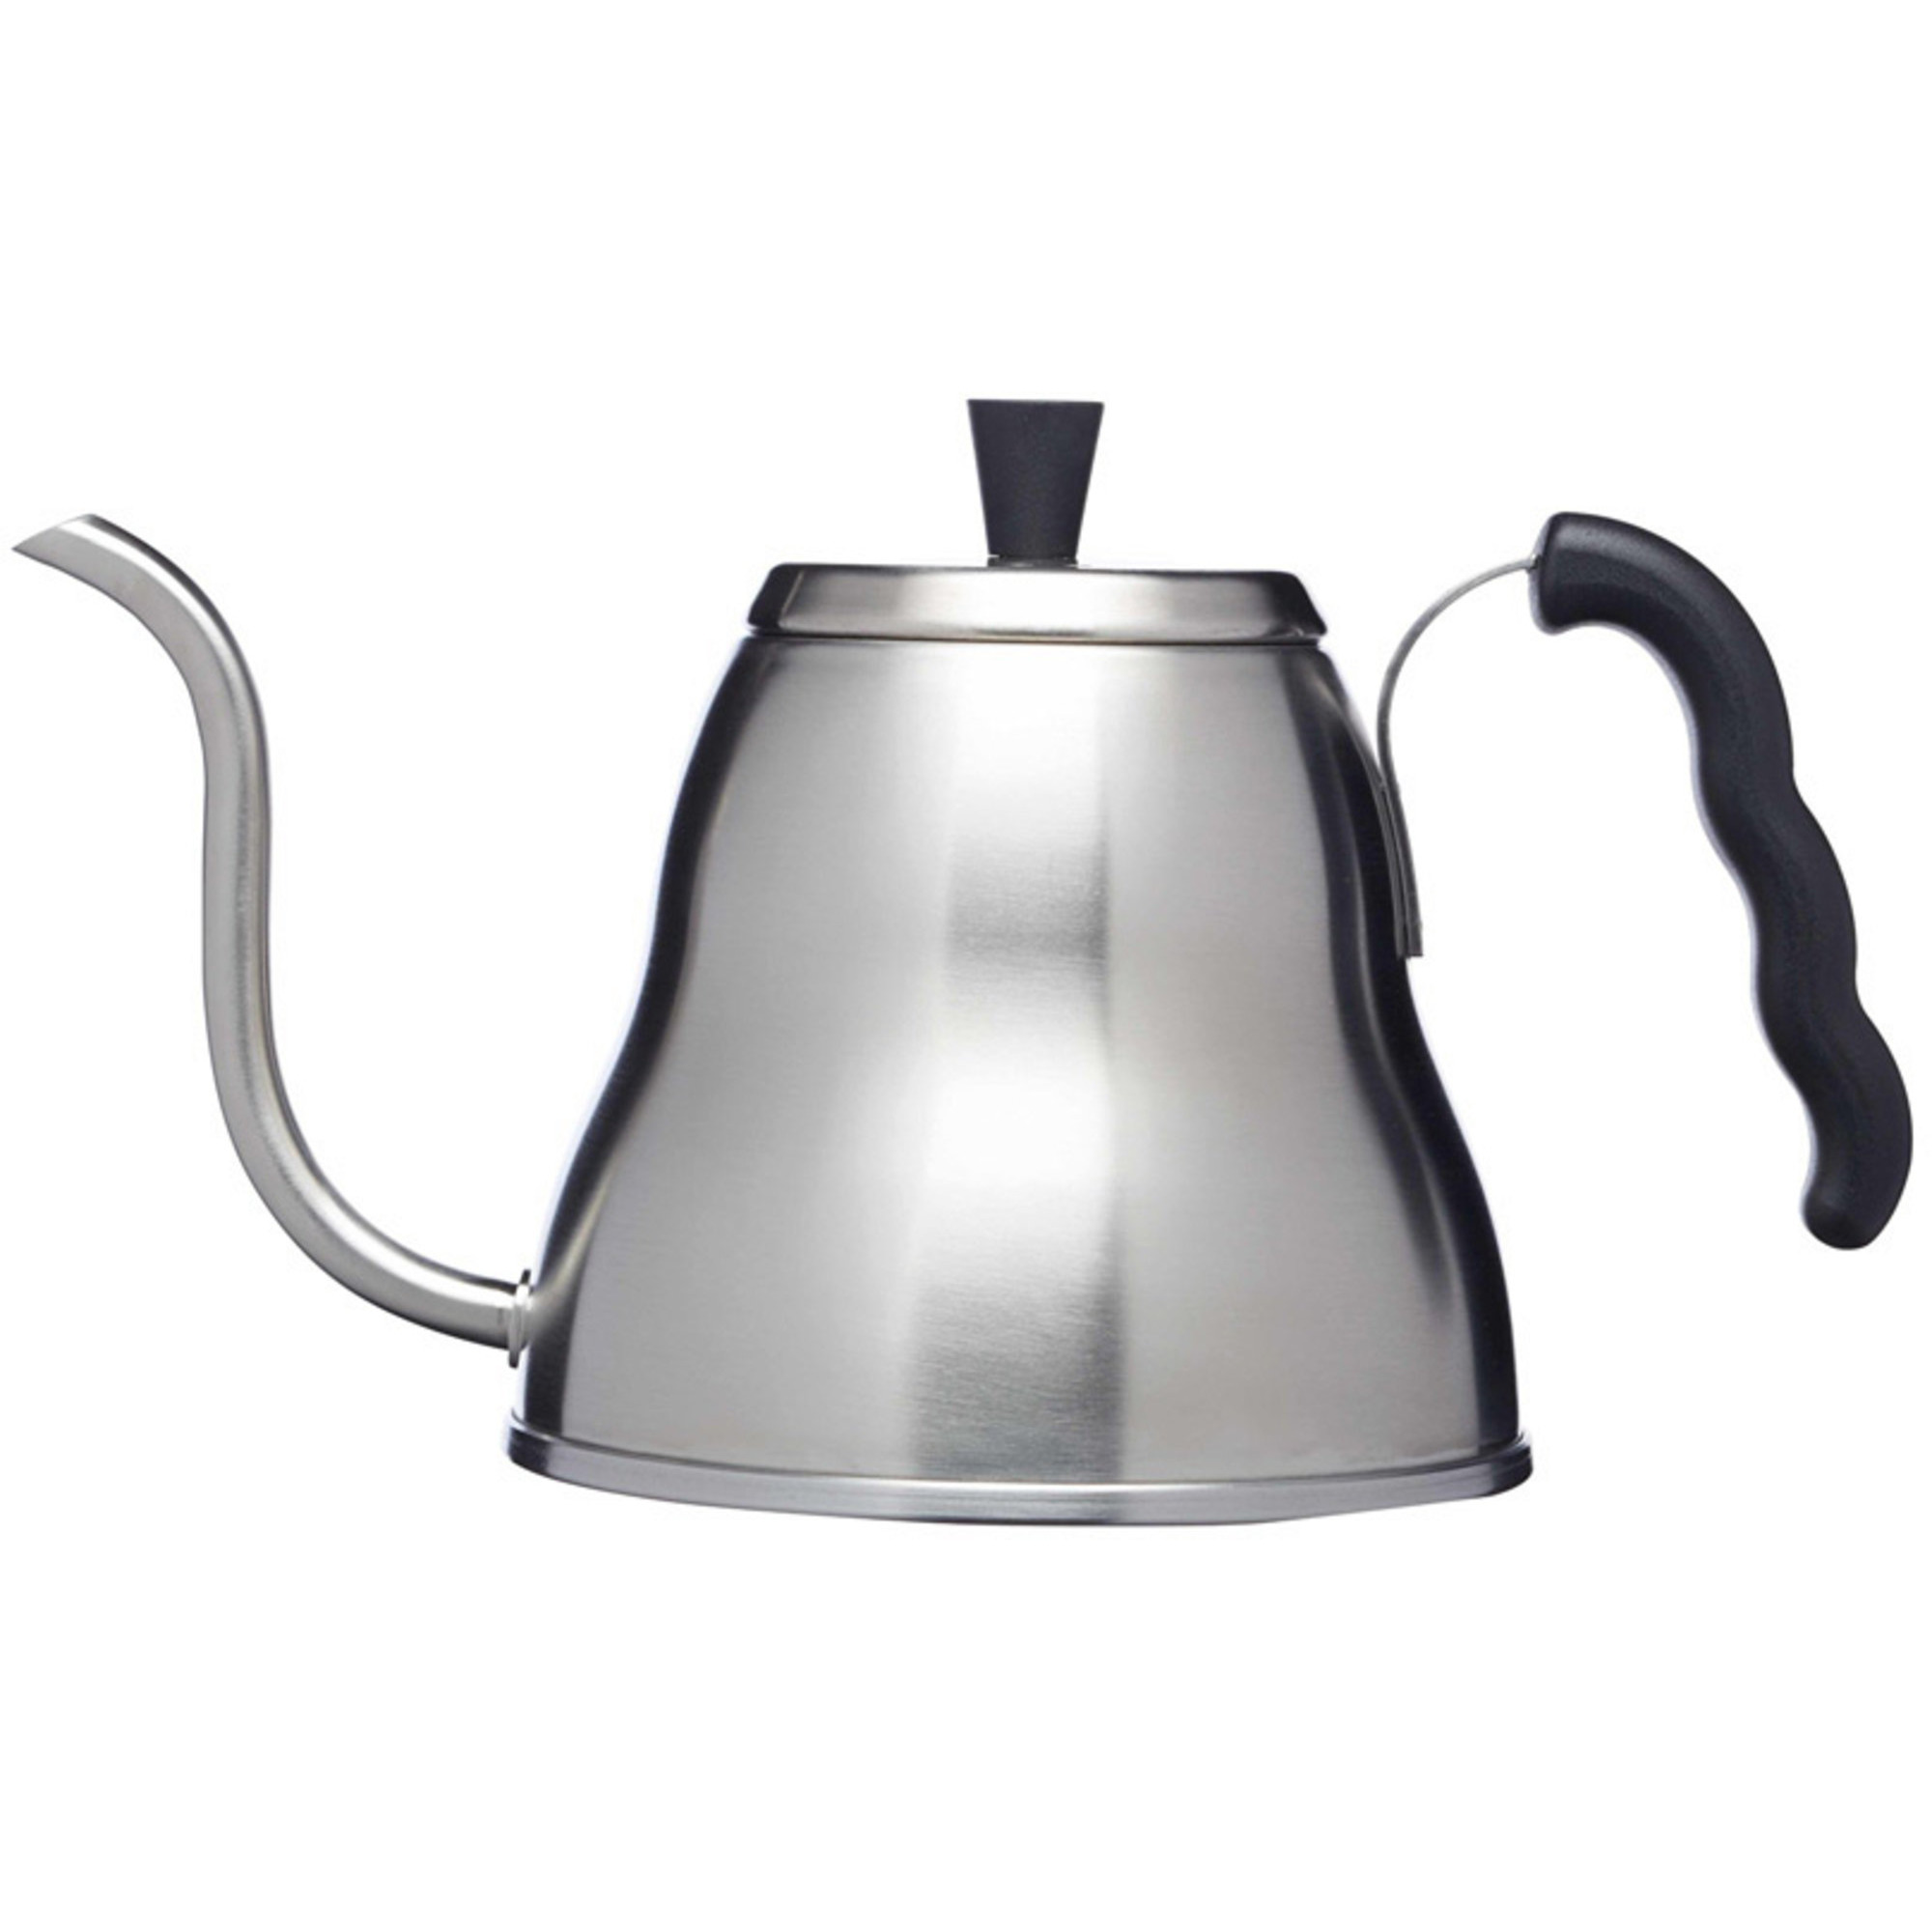 Kitchen Craft Pour Over Kittel Rostfritt Stål 700 ml